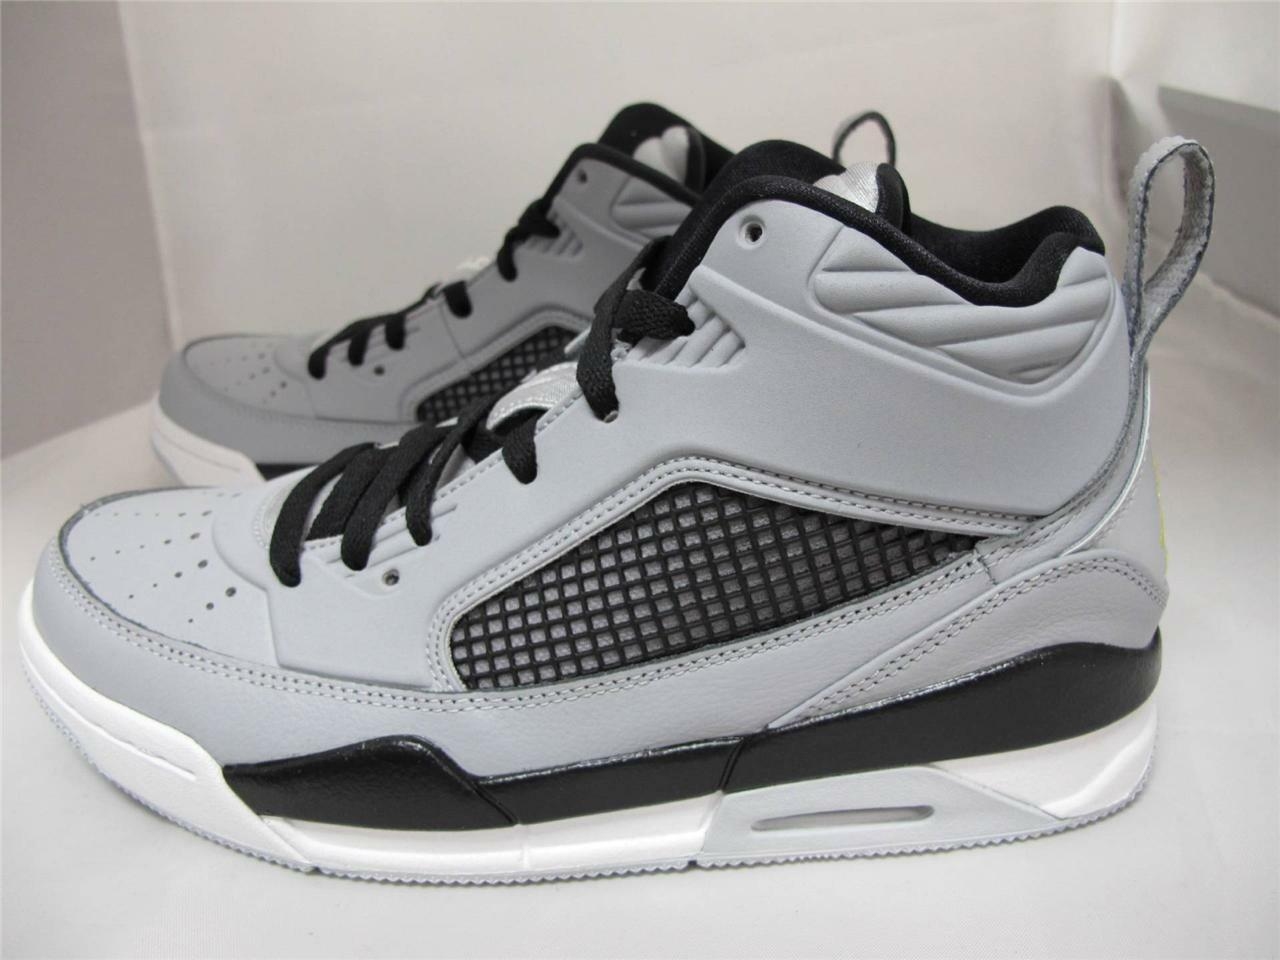 NEW MEN'S   JORDAN FLIGHT 9.5 654262-070 Great discount